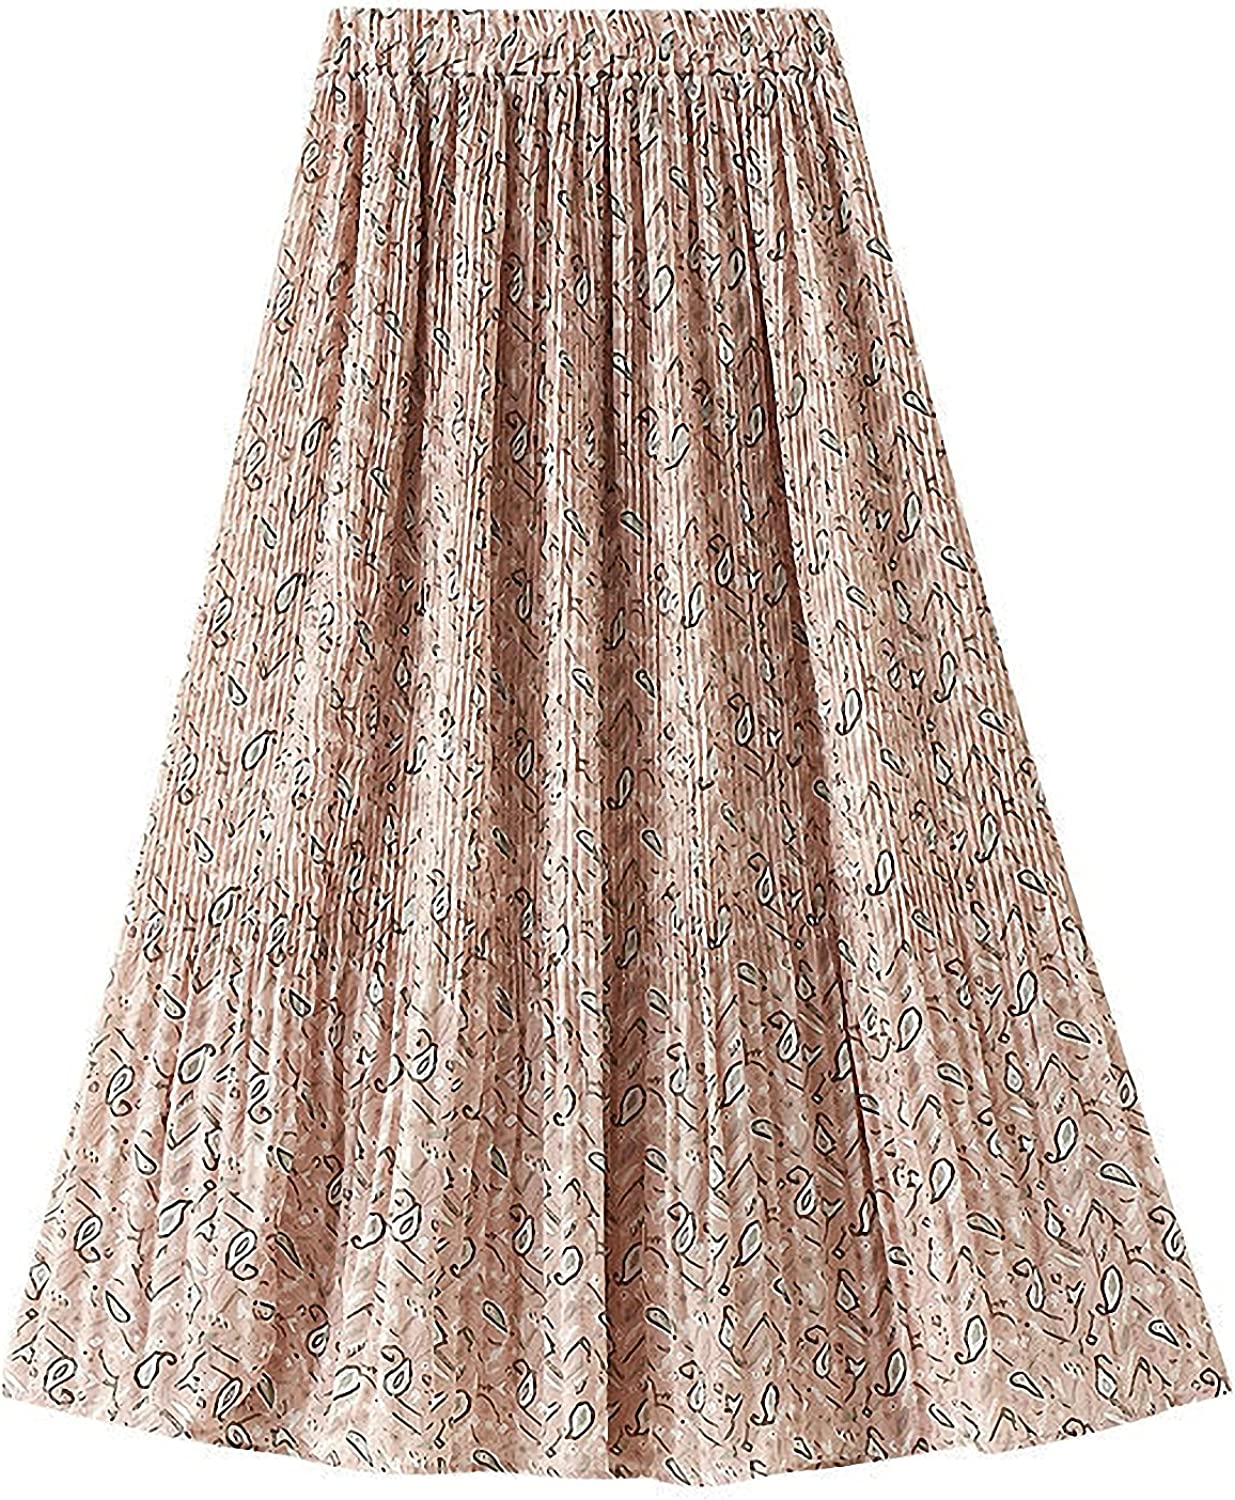 MEWOW Women's Pastoral Style Elastic Waist Floral A Line Pleated Midi Long Skirt